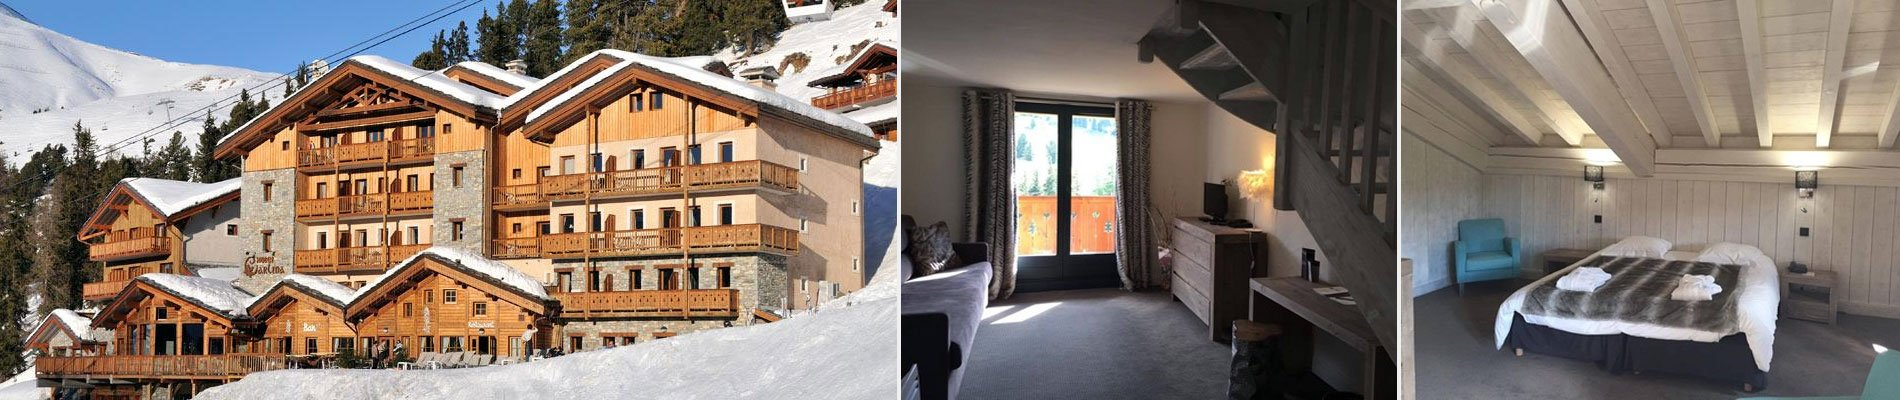 hotel-spa-carlina-belle-plagne